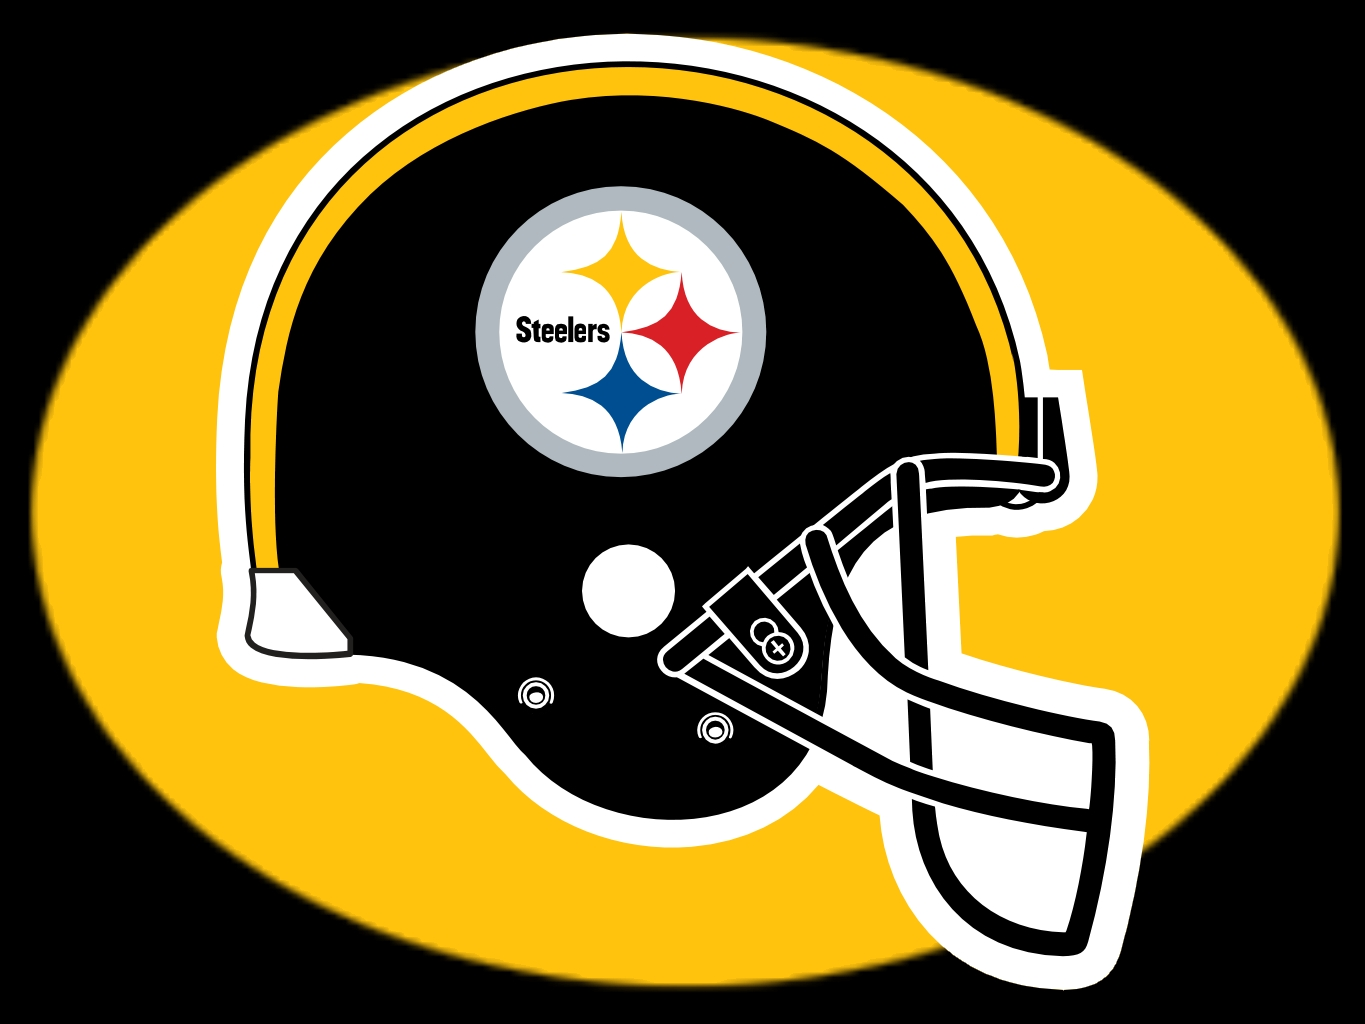 steelers logo #931